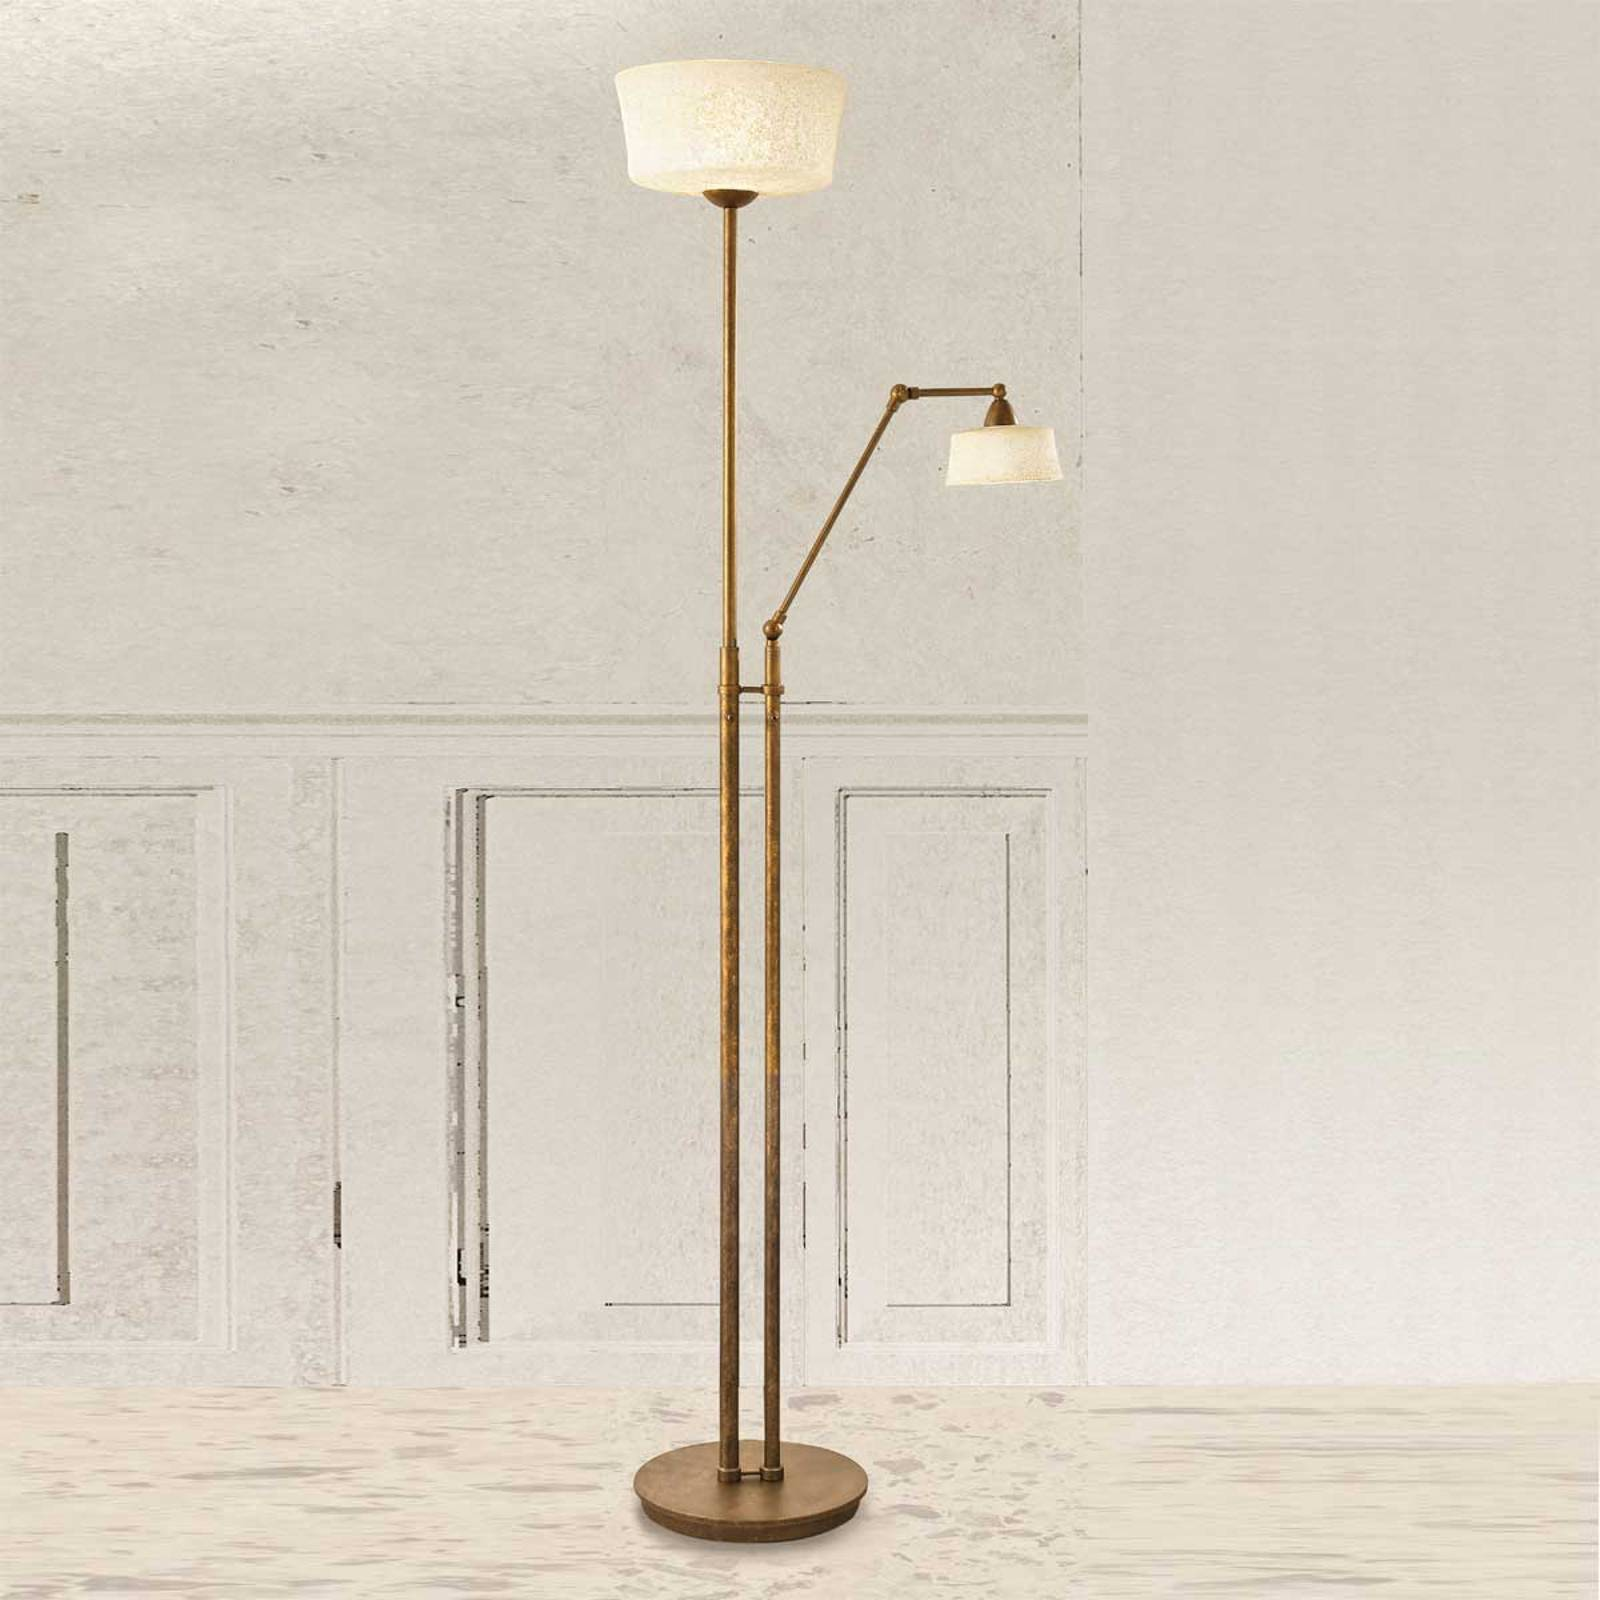 Floor lamp Alessio with reading arm from LAM